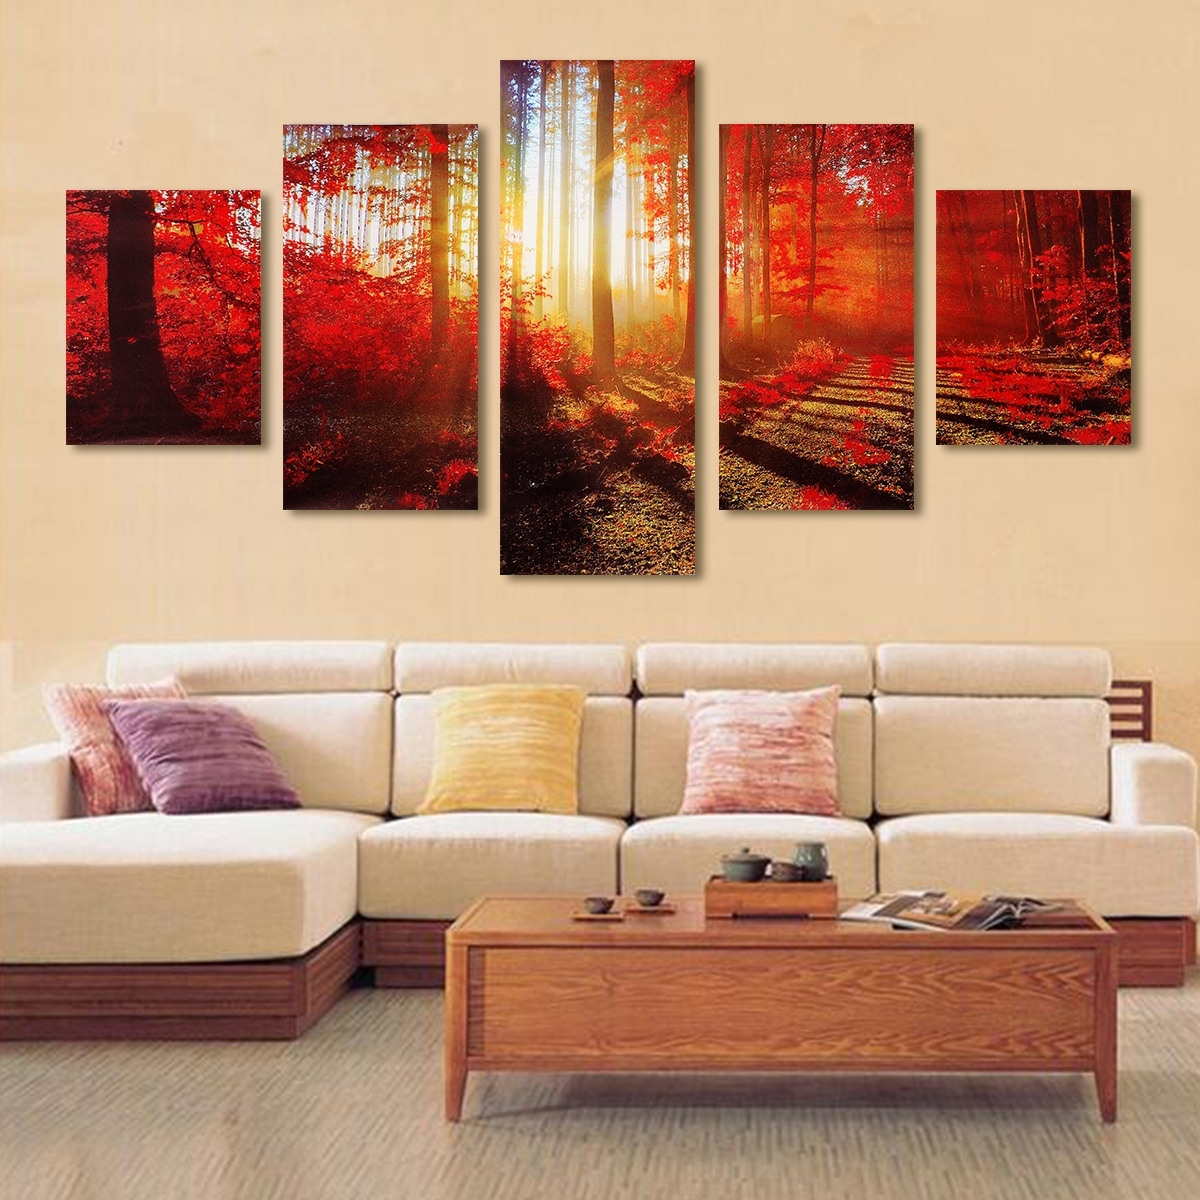 5Pcs Modern Art Oil Paintings Canvas Print Pictures Home Wall Decor Pertaining To Most Recent Wall Art Paintings (View 13 of 15)